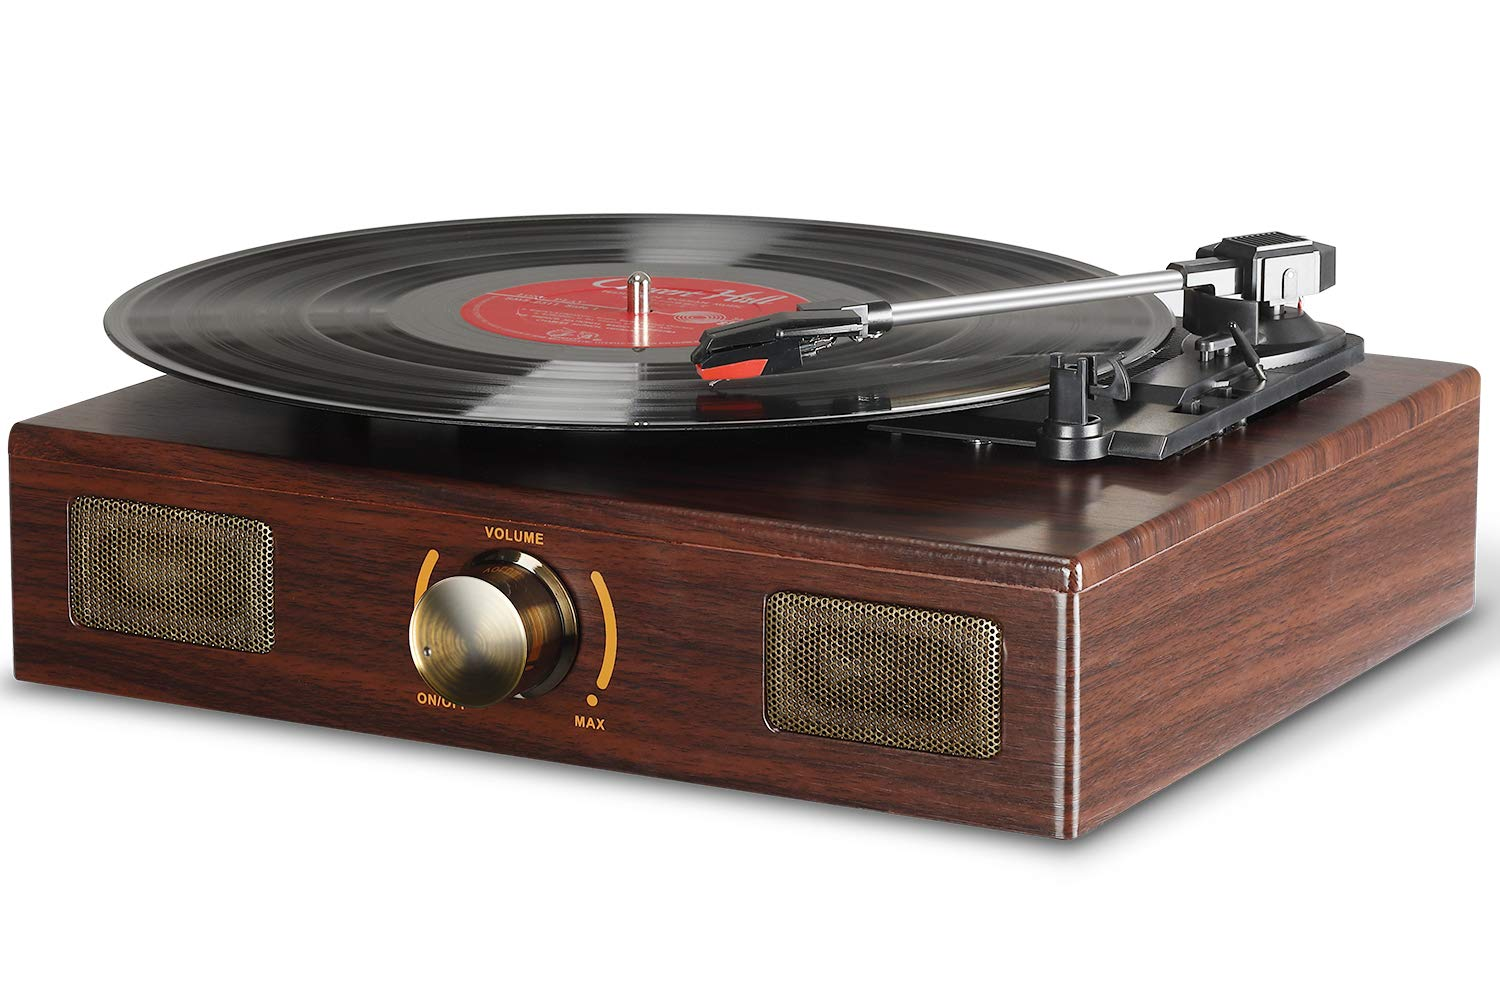 LuguLake Vinyl Record Player, LuguLake Turntable with Stereo 3-Speed, Record Player, and RCA Output, Vintage Phonograph with Retro Wooden Finish (Matt Finish) by LuguLake